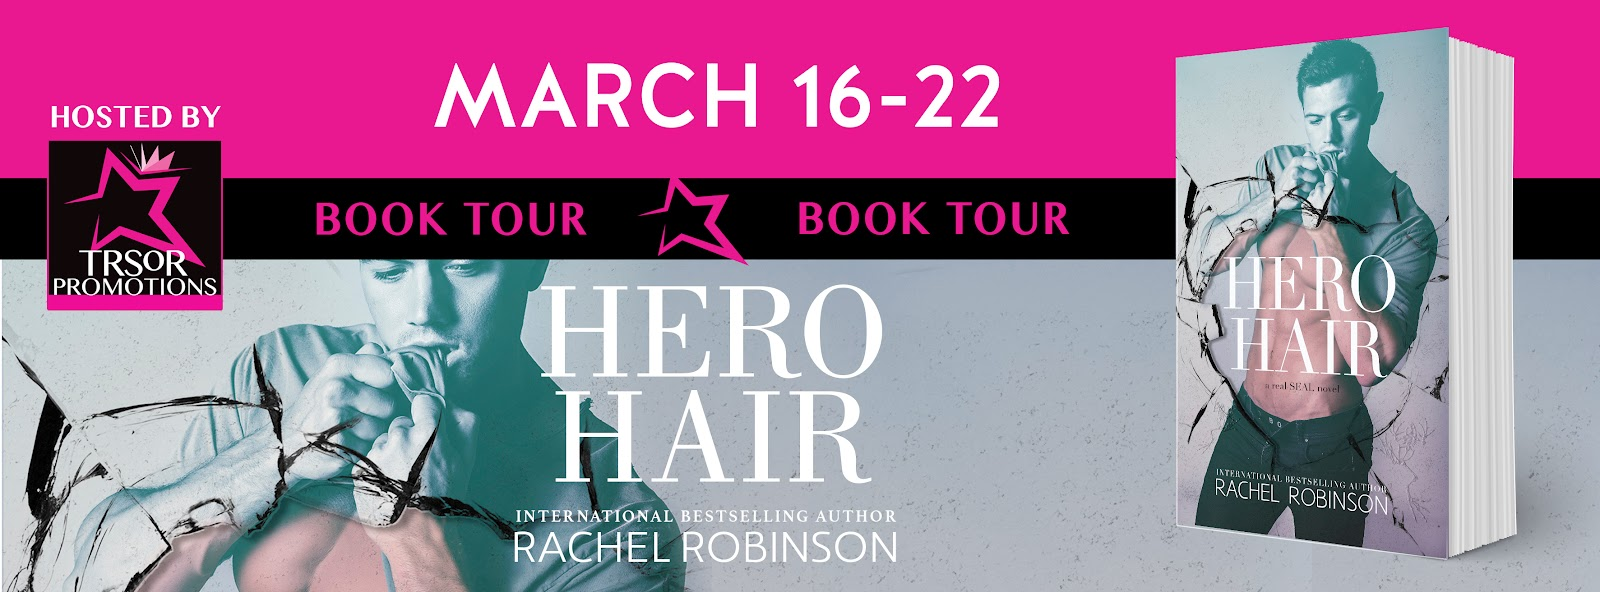 HERO_HAIR_BOOK_TOUR.jpg